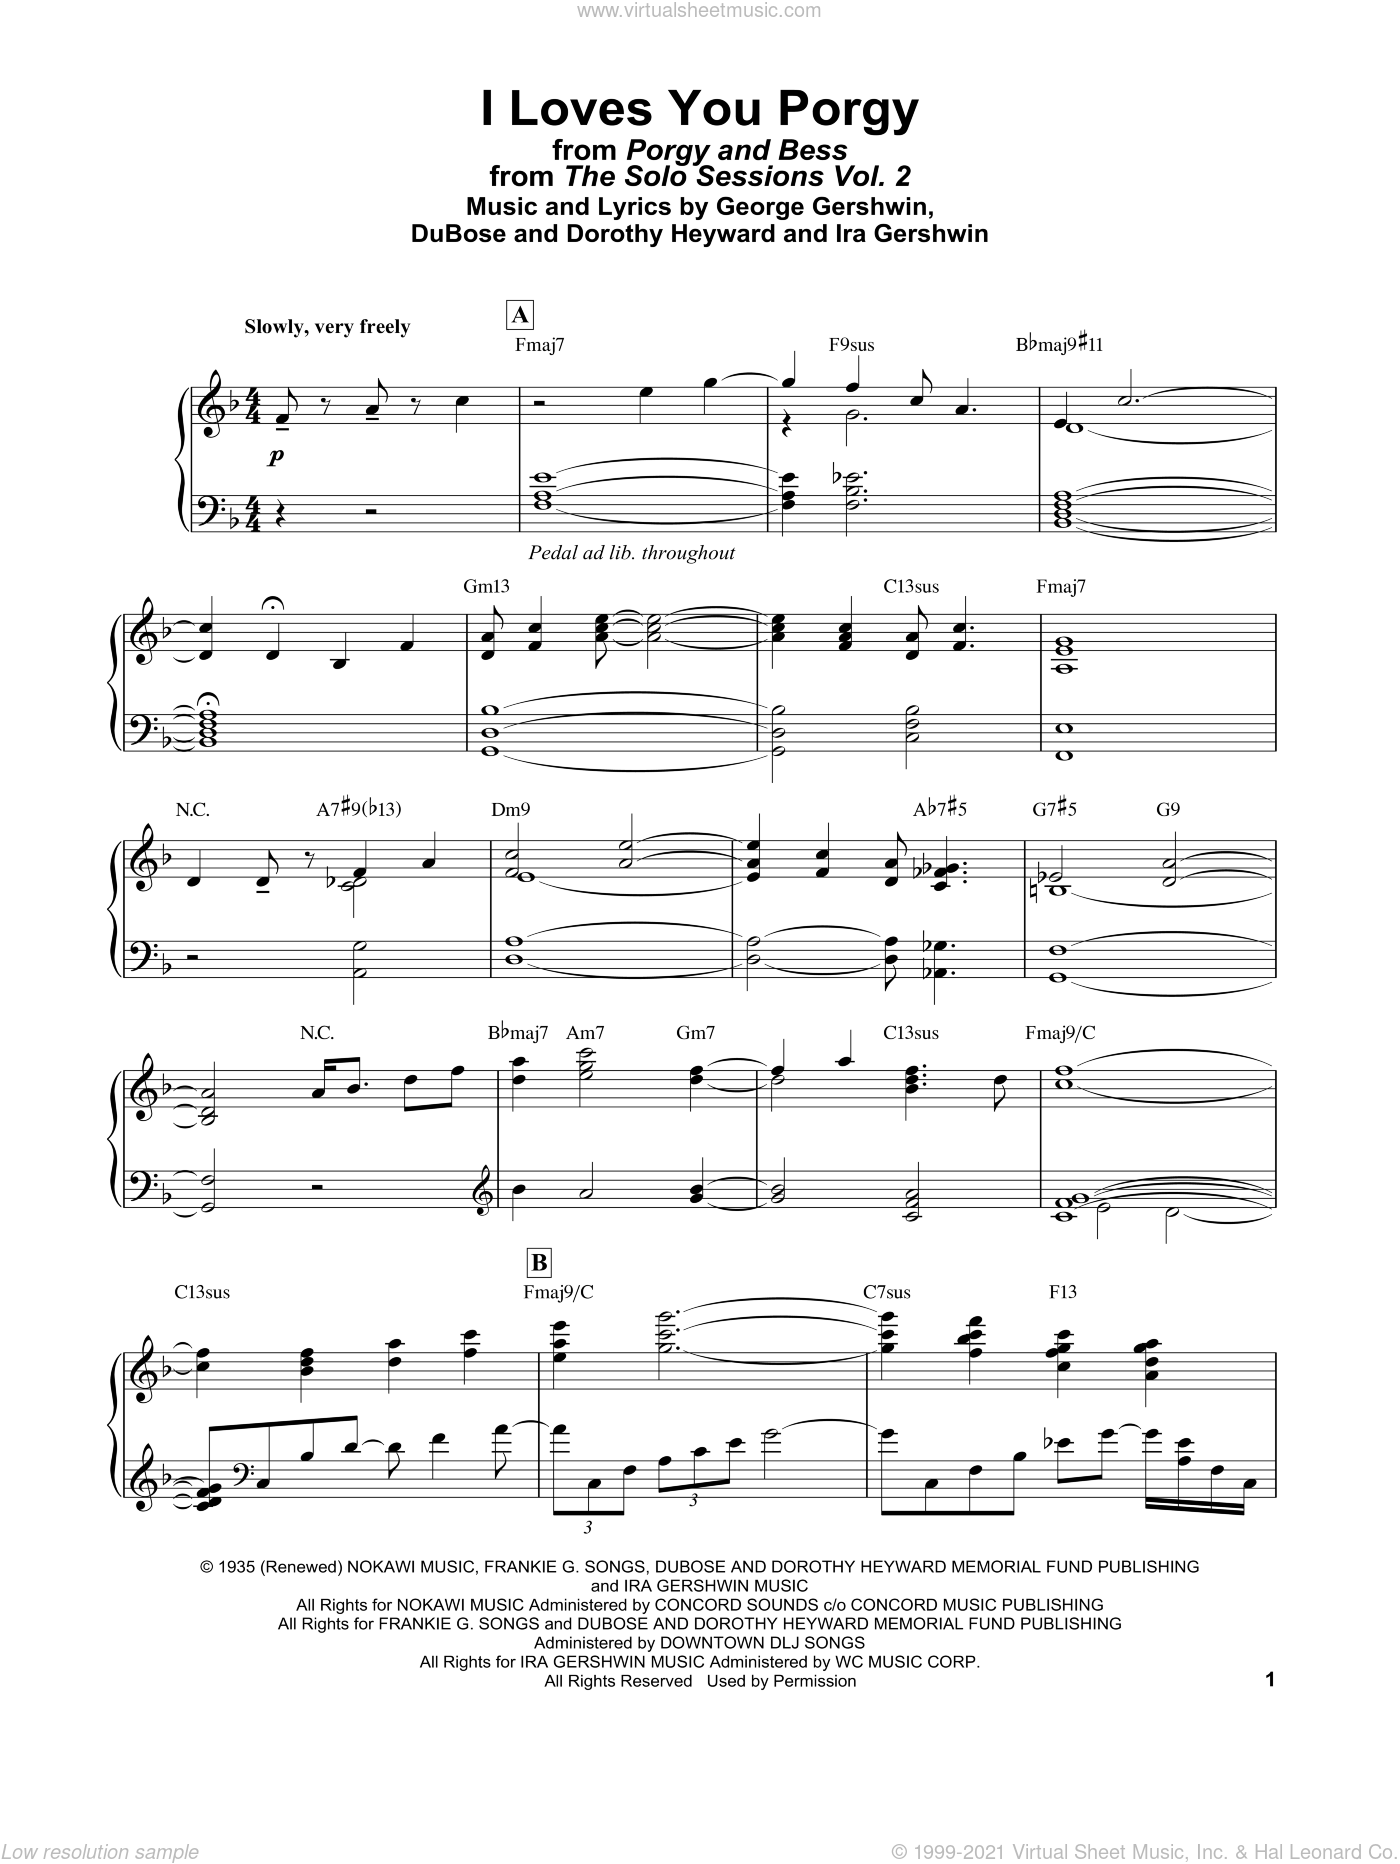 I Loves You, Porgy (from Porgy and Bess) sheet music for piano solo by Bill Evans, Dorothy Heyward, DuBose Heyward, George Gershwin and Ira Gershwin, intermediate skill level